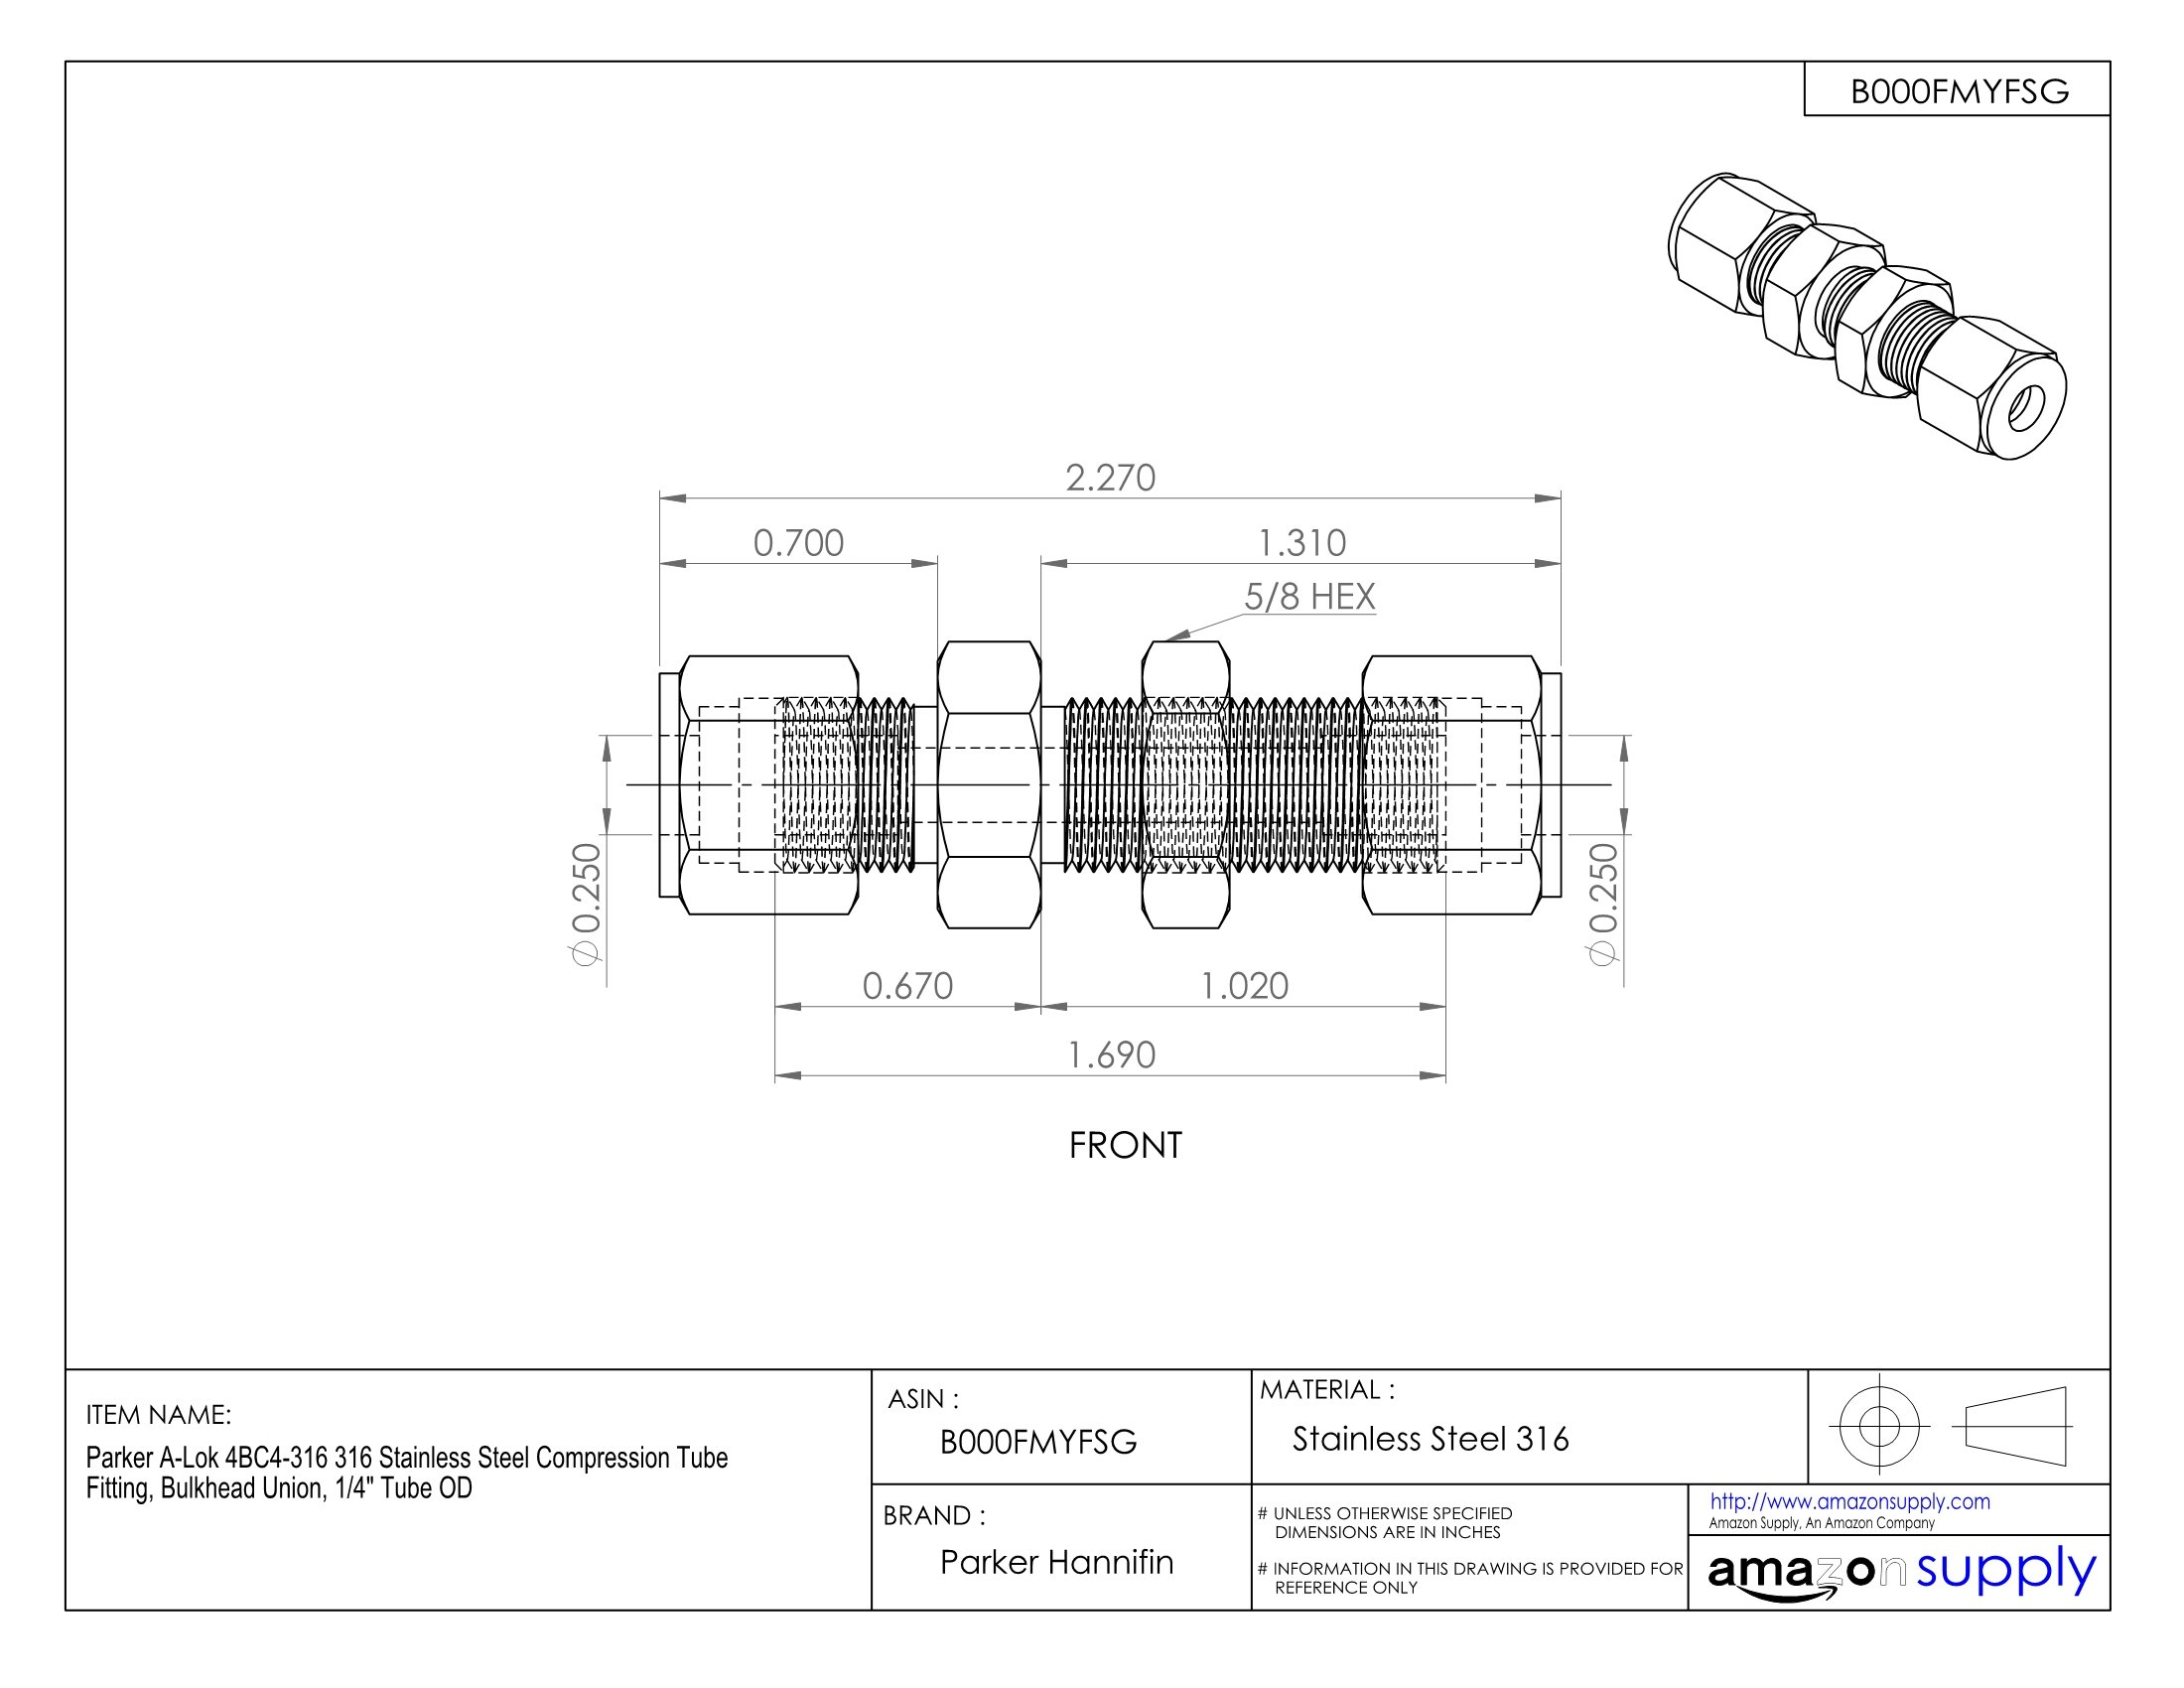 Parker A-Lok 4BC4-316 316 Stainless Steel Compression Tube Fitting, Bulkhead Union, 1/4'' Tube OD by Parker (Image #2)